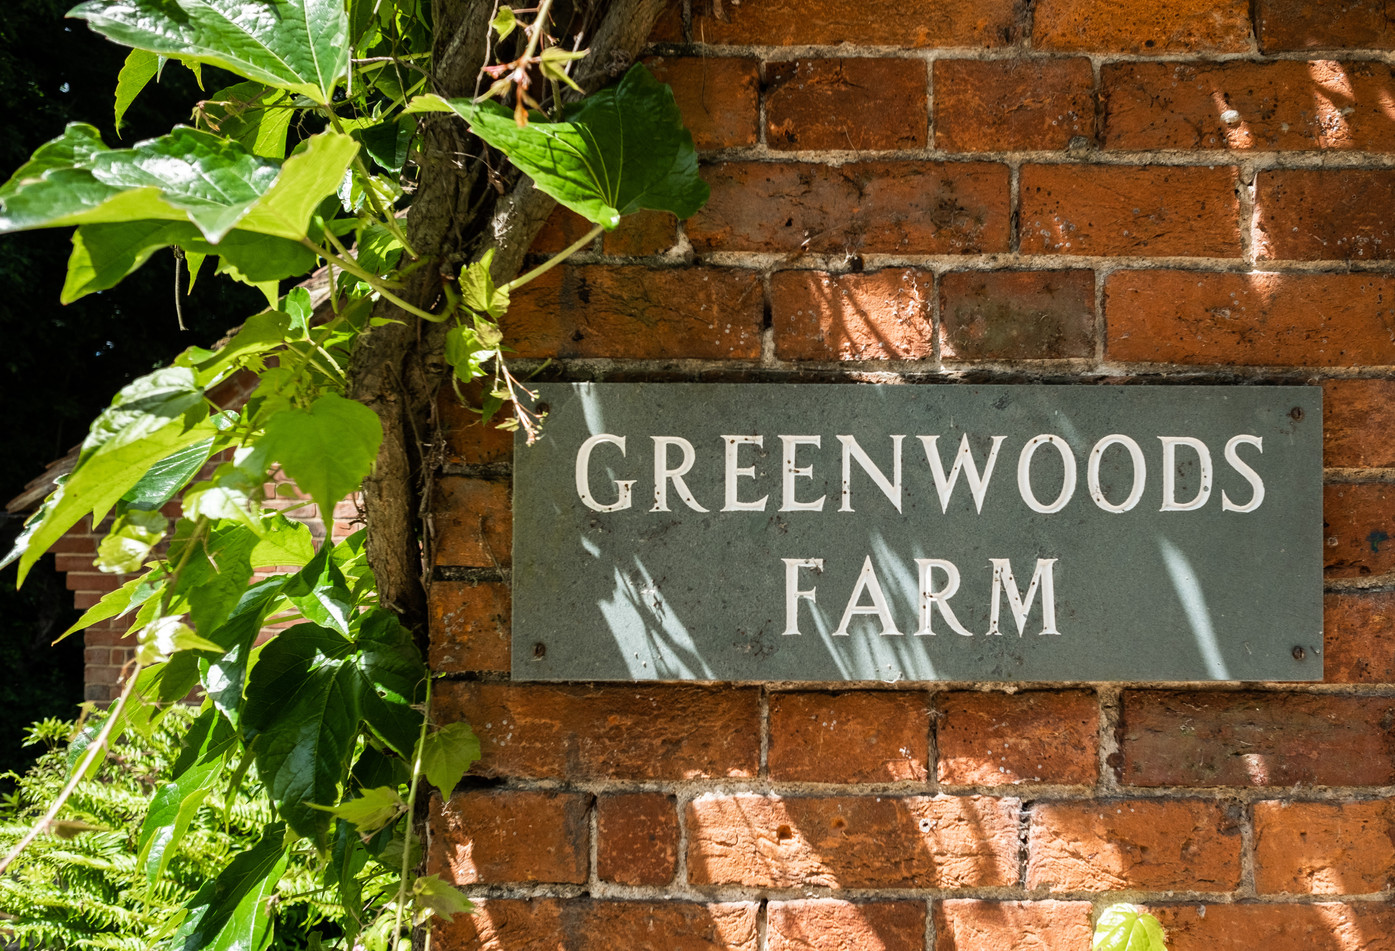 All images © Greenwood Granary